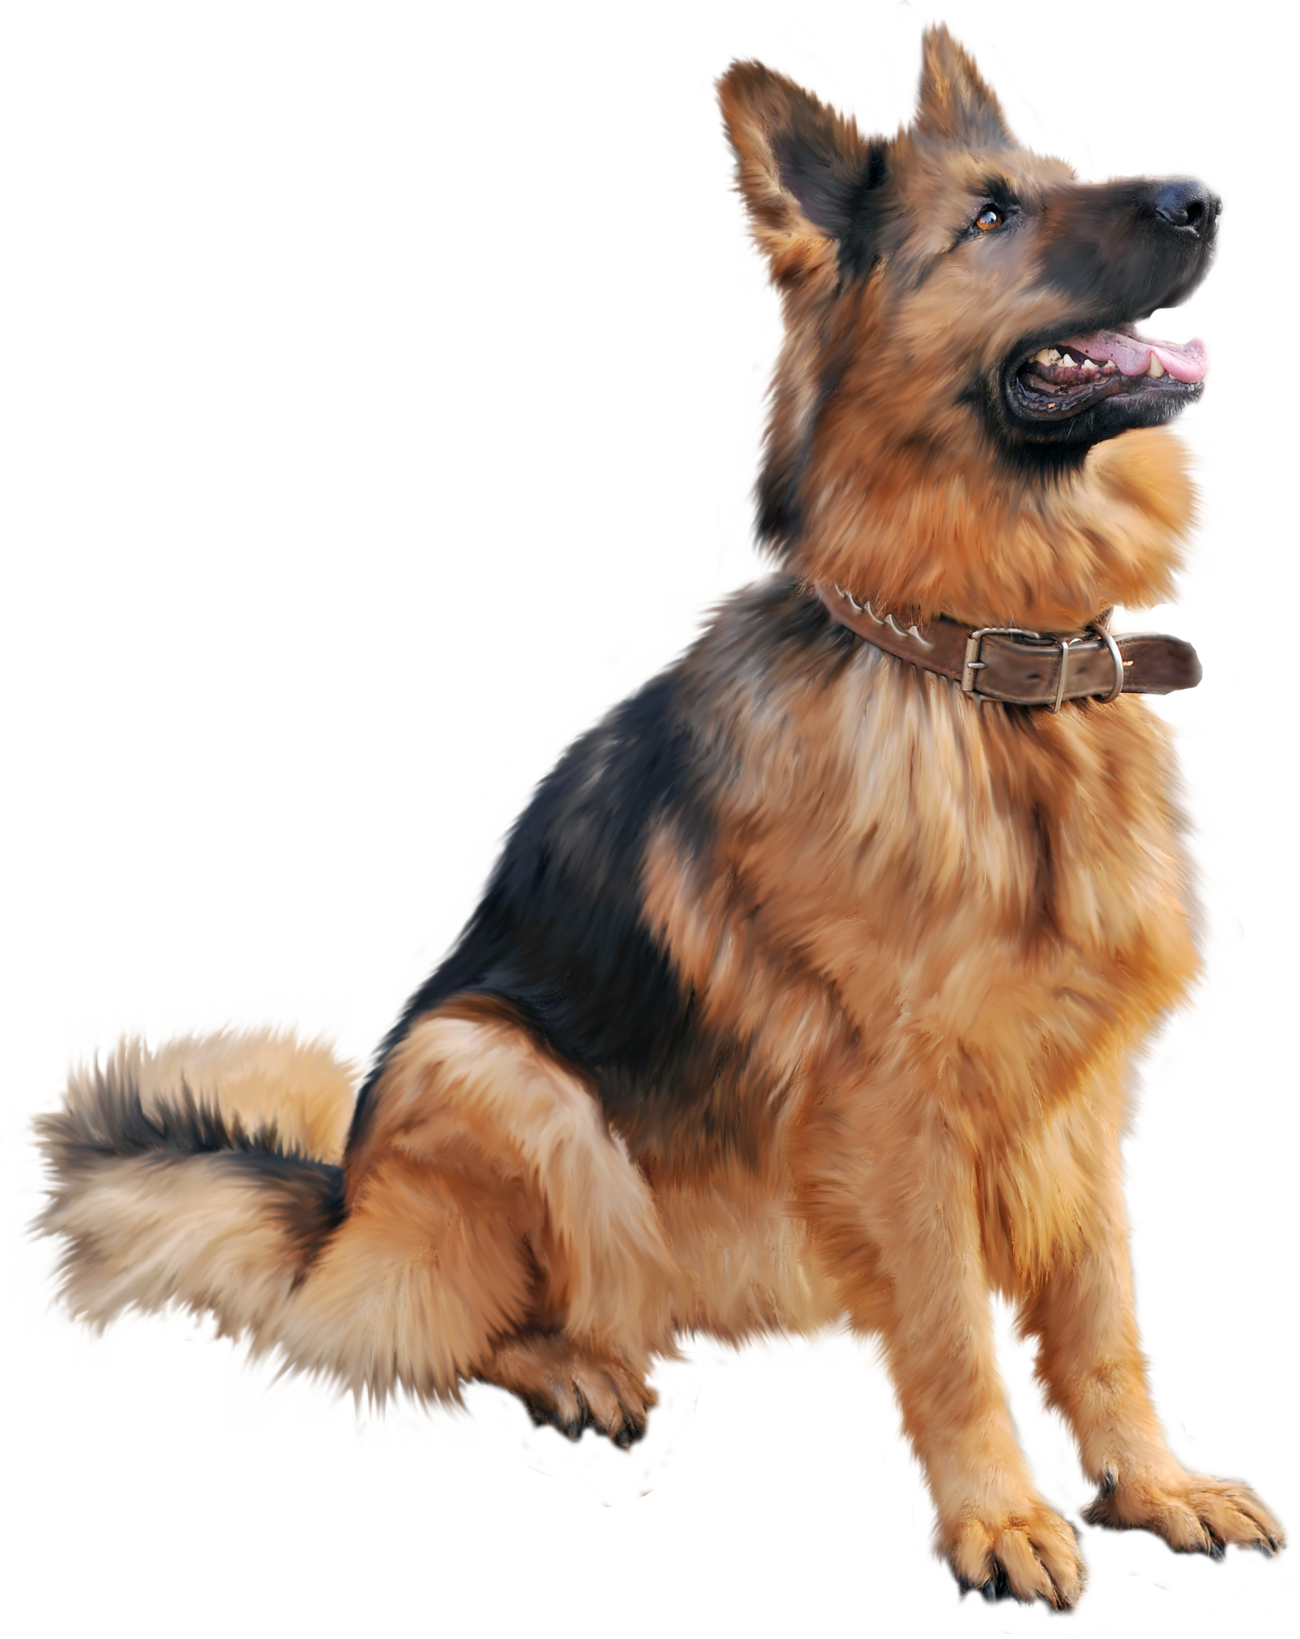 Cutest Dog Sitting Png Image Photoshop Images Puppy Pictures Dog Training Obedience